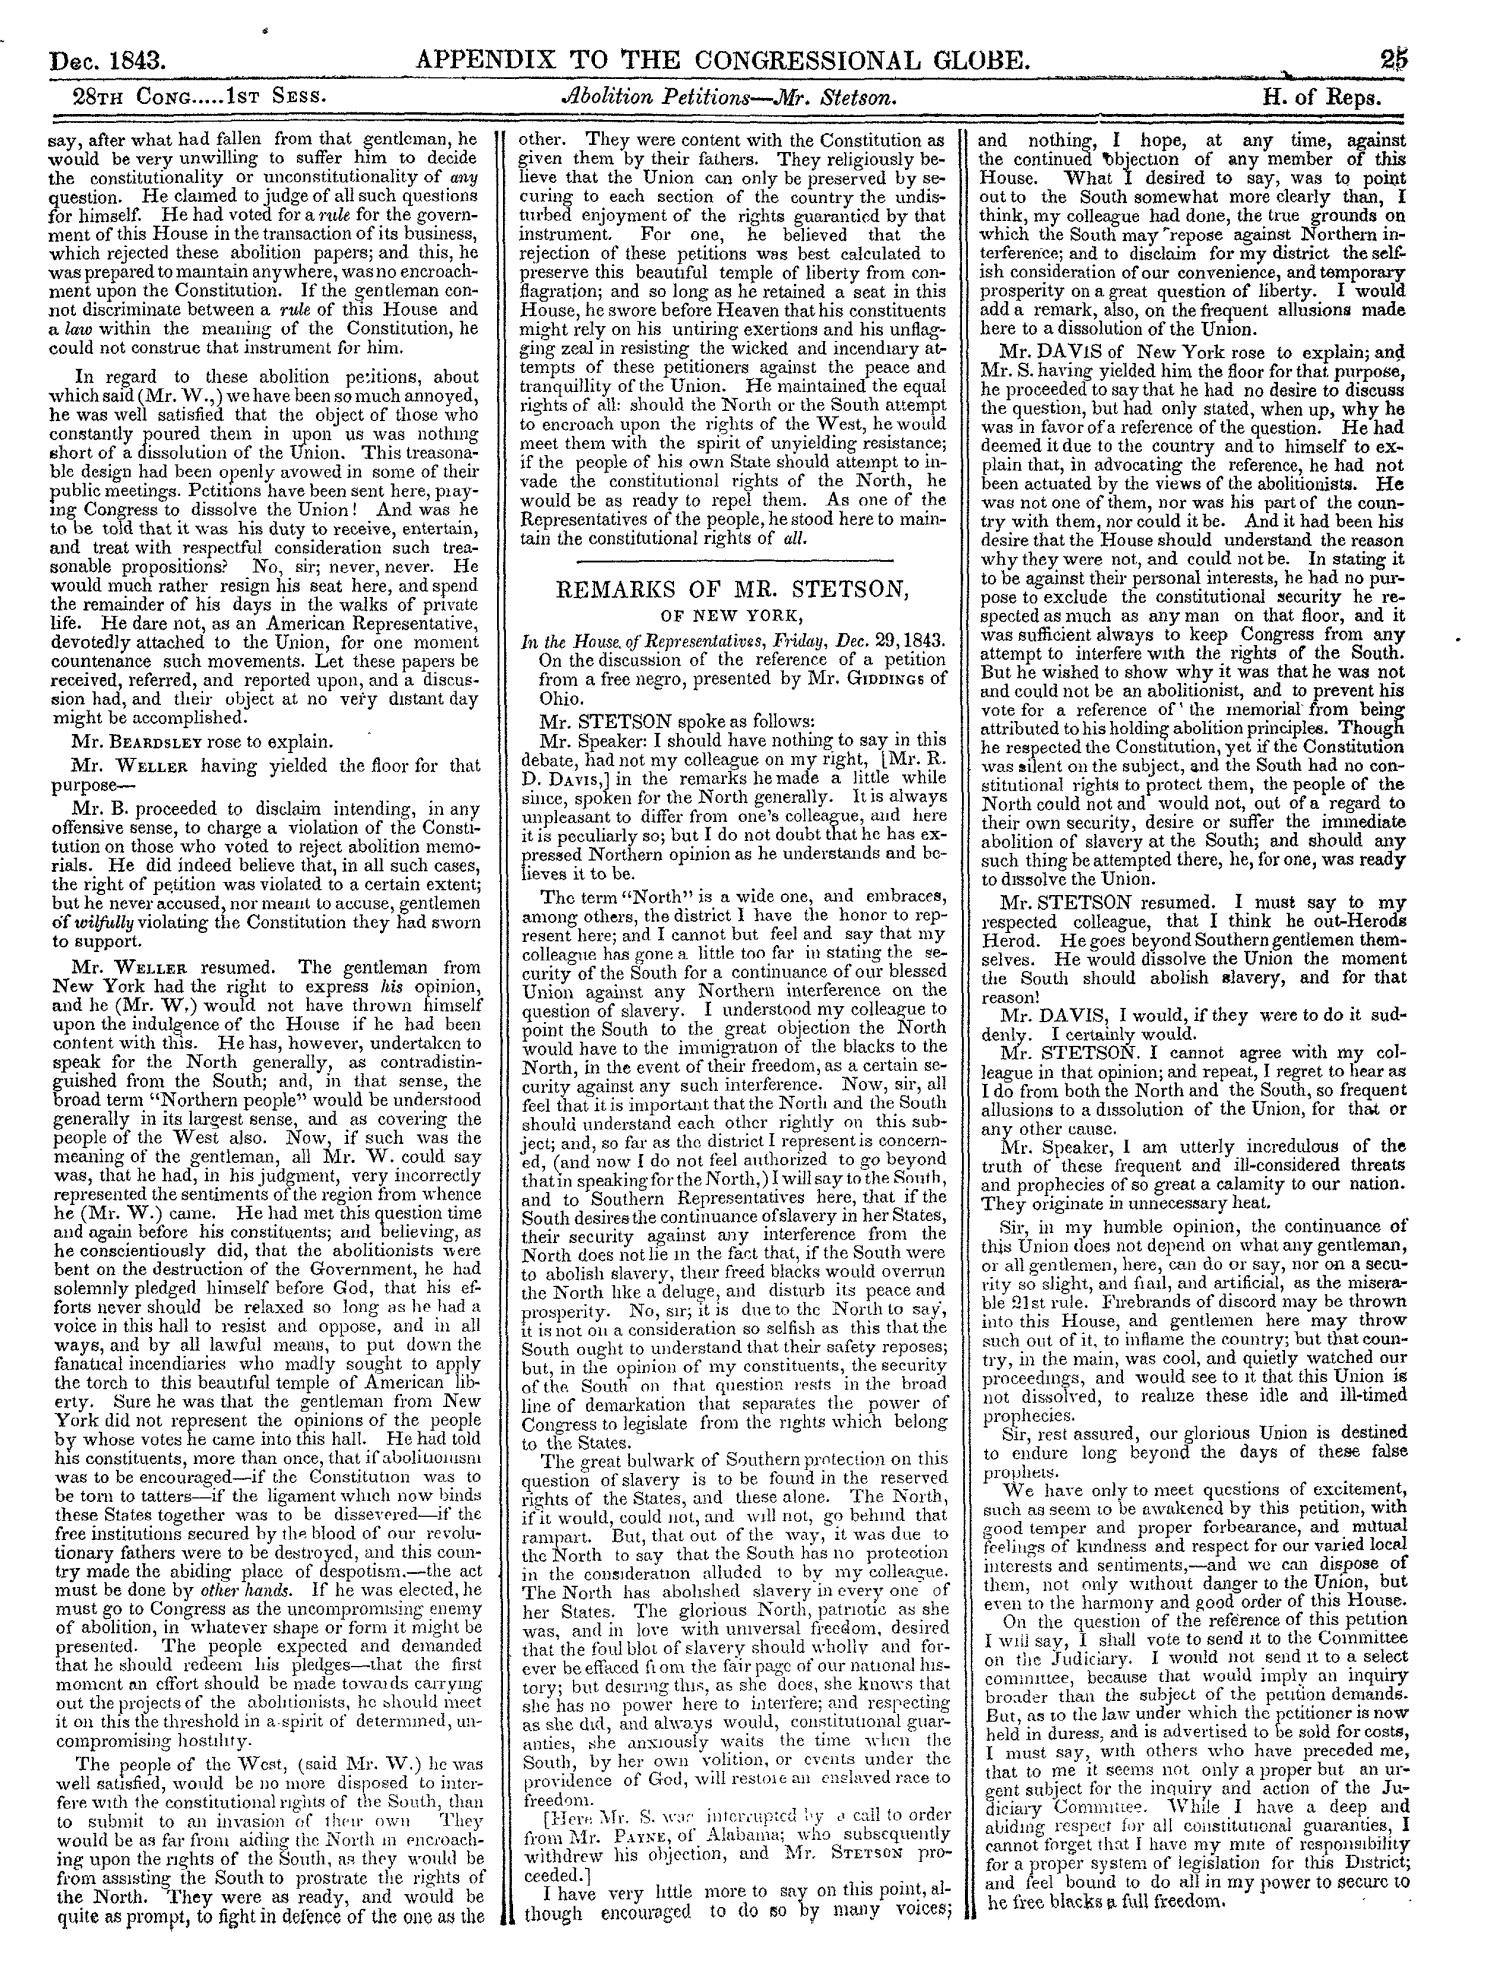 The Congressional Globe, Volume 13, Part 2: Twenty-Eighth Congress, First Session                                                                                                      25